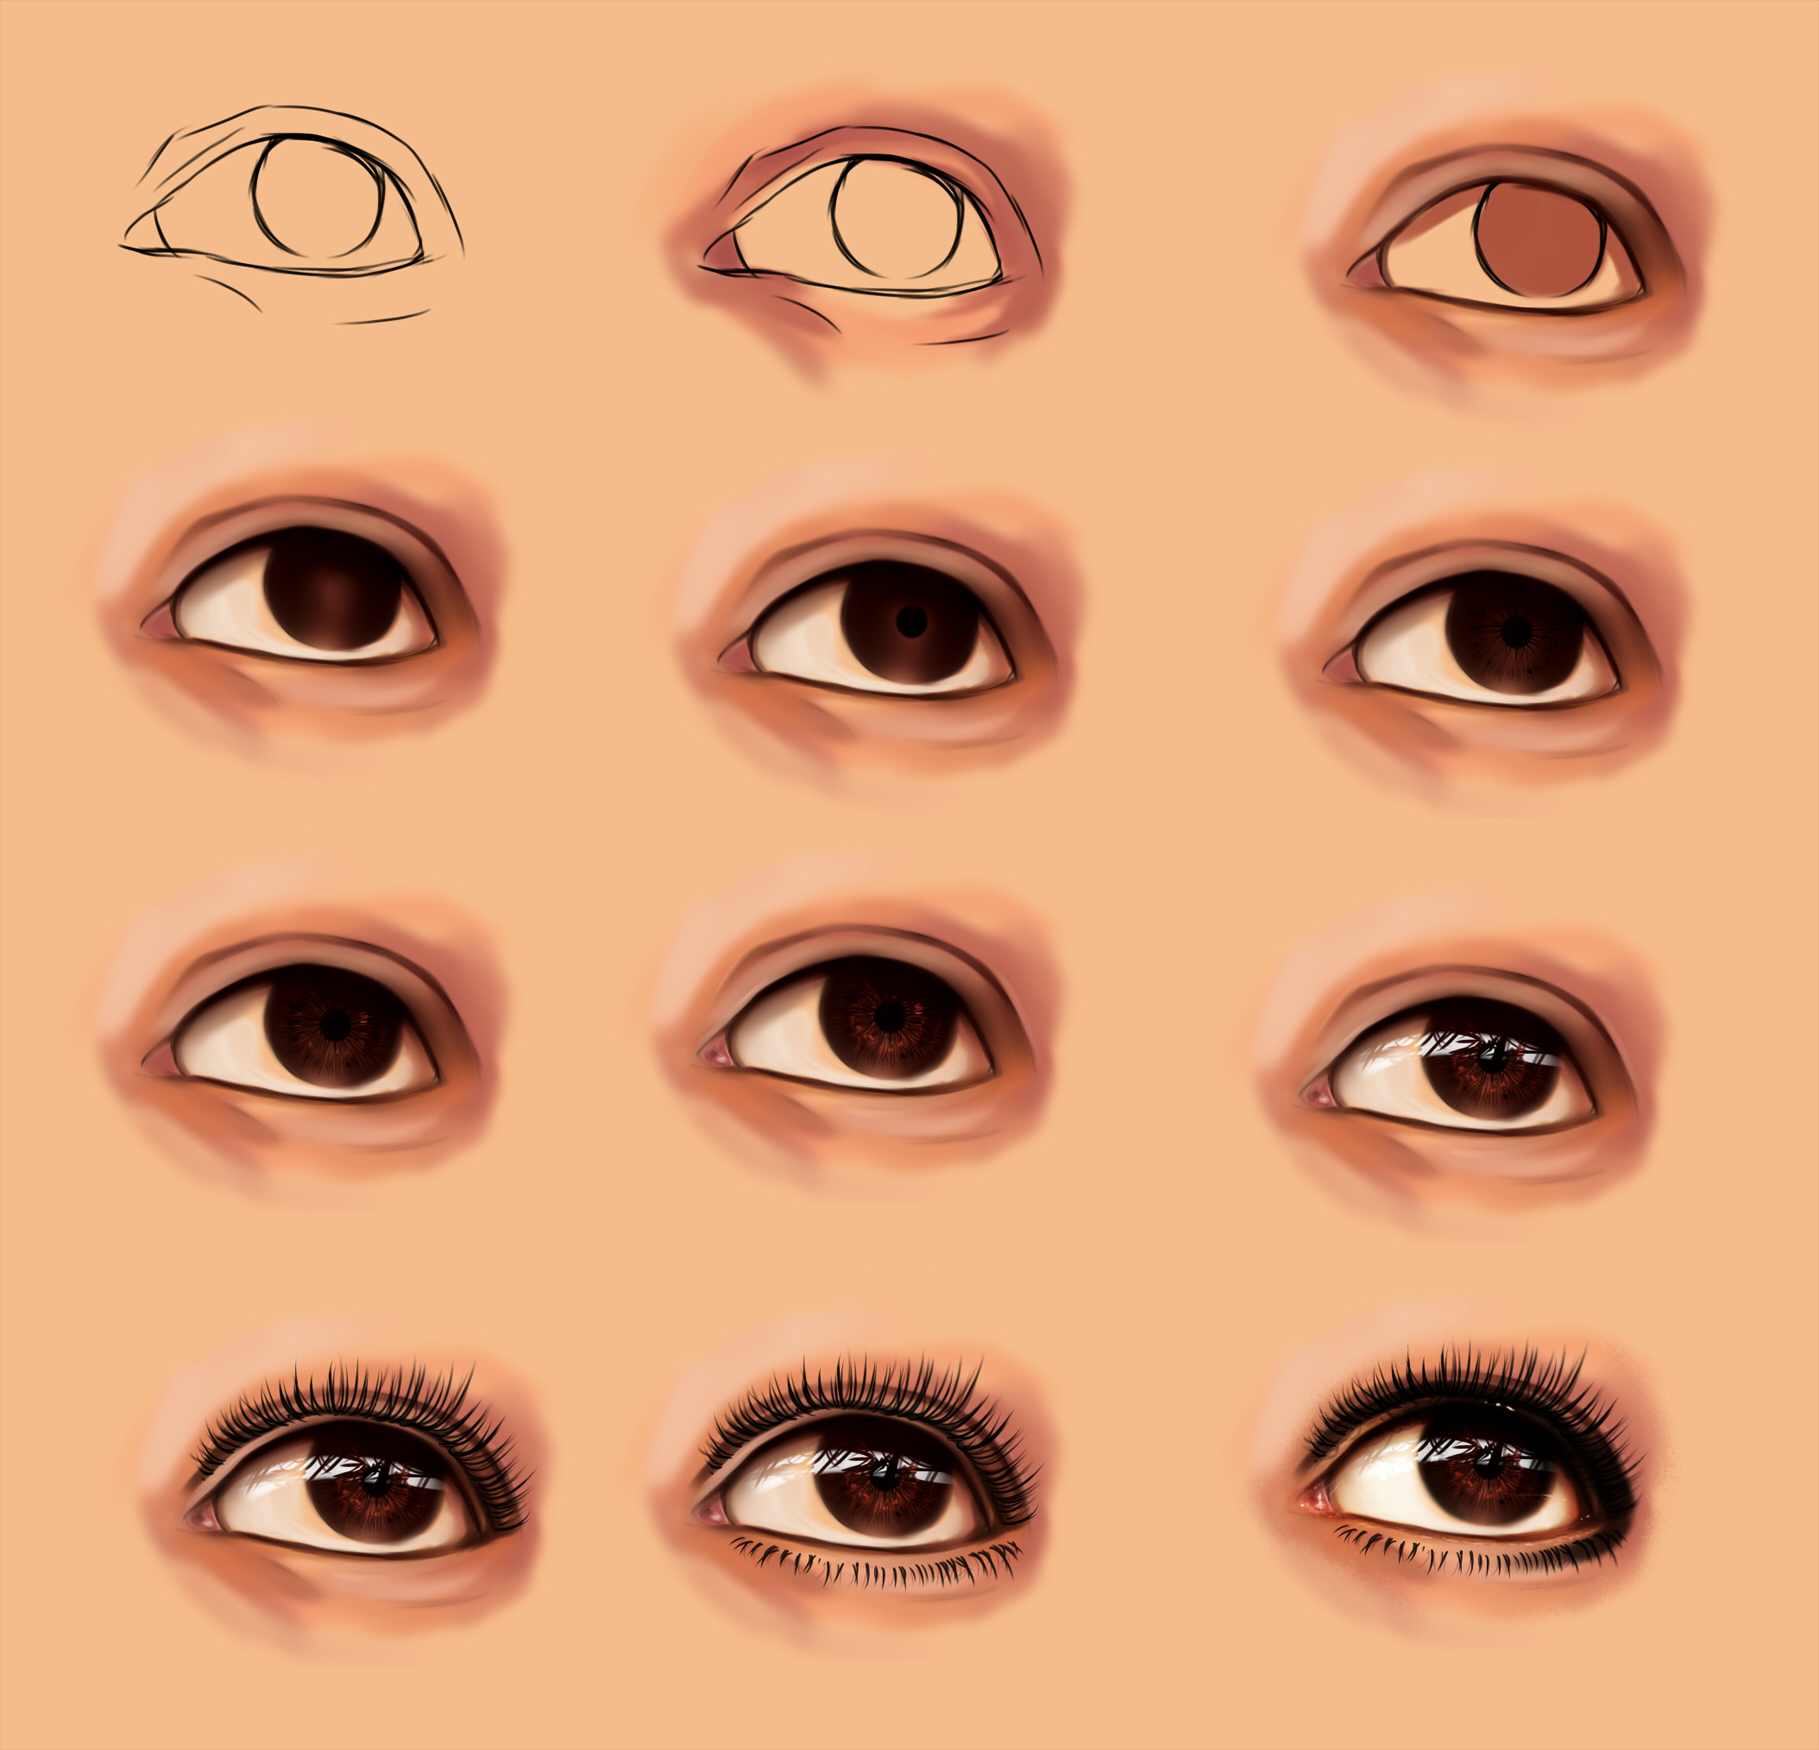 Fur tutorial by ryky on deviantart how i draw realistic eye by ryky ccuart Images